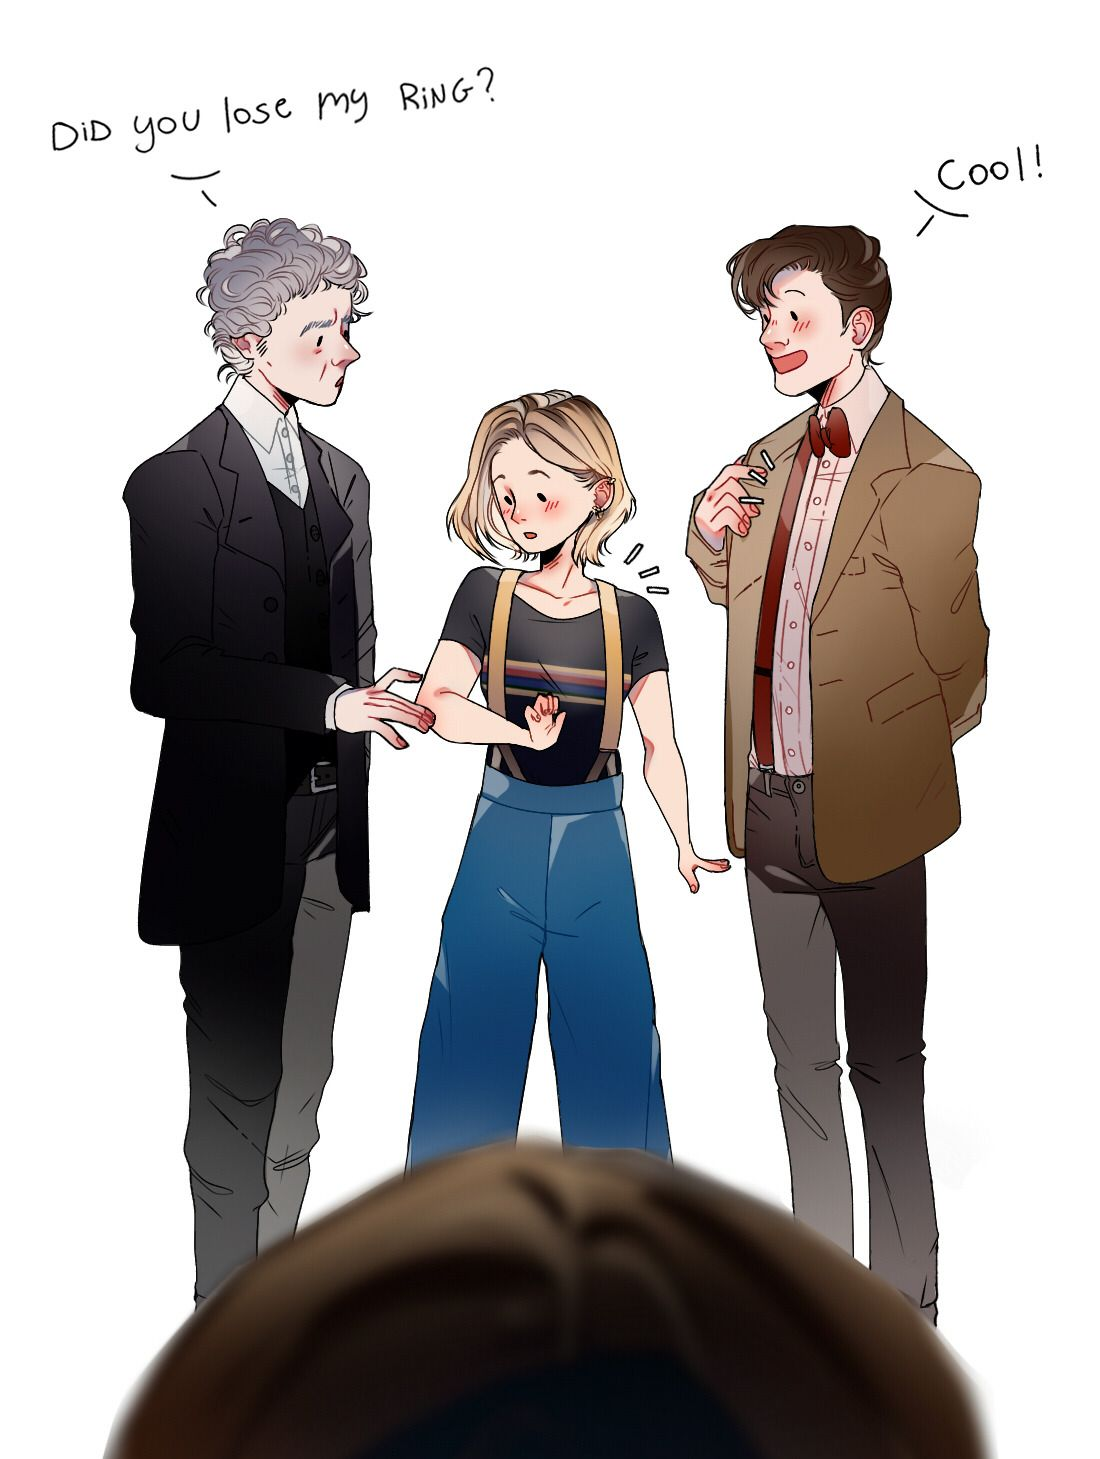 Pin By Benjamin Malis On Doctor Who In 2020 Doctor Who Doctor Who Art Doctor Who Fan Art